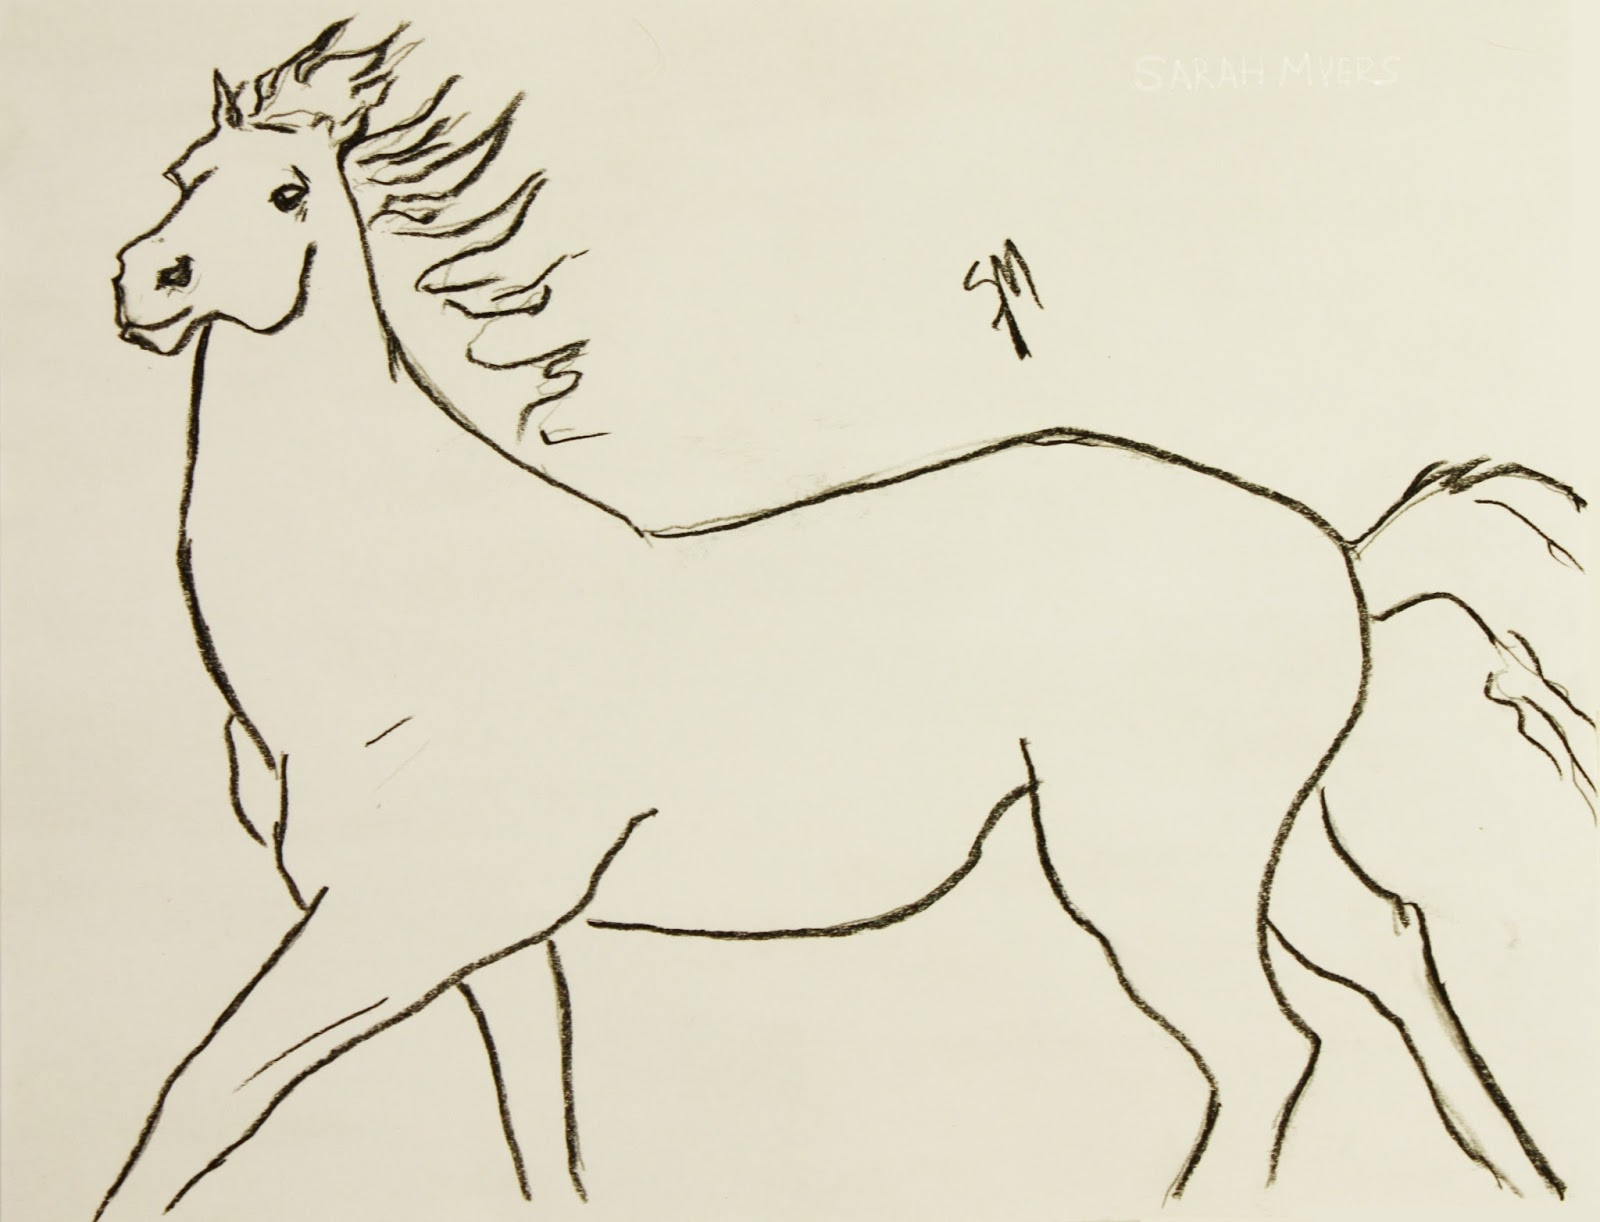 Horse, running, line, drawing, study, sketch, Sarah, Myers, movement, gallop, charcoal, art, arte, minimalist